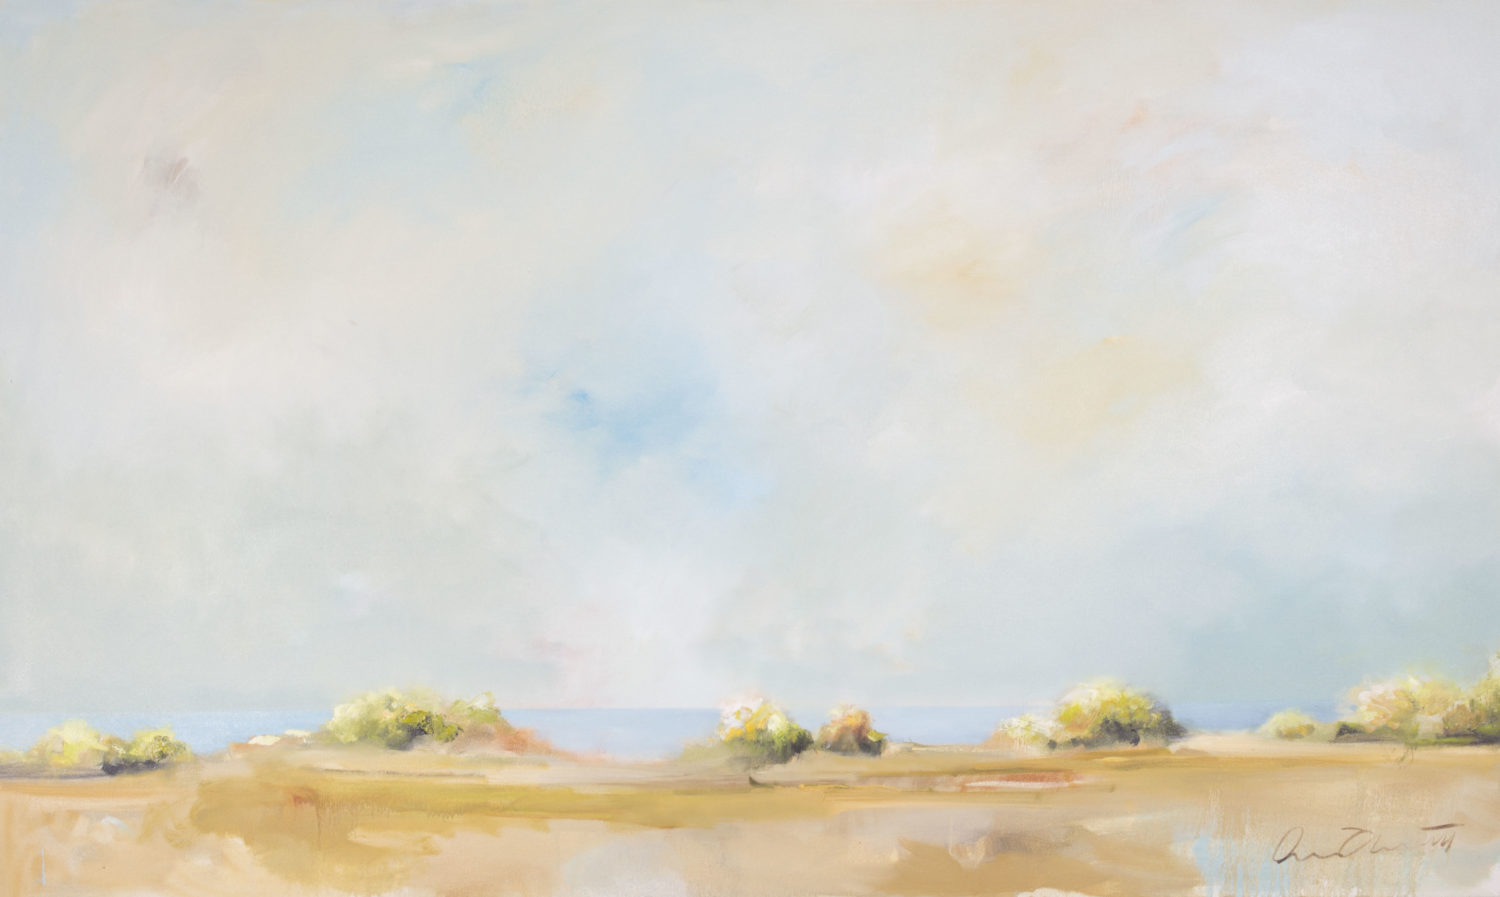 """Abrecht, """"Tidal Line"""", Oil on Canvas, 36 x 60 in."""